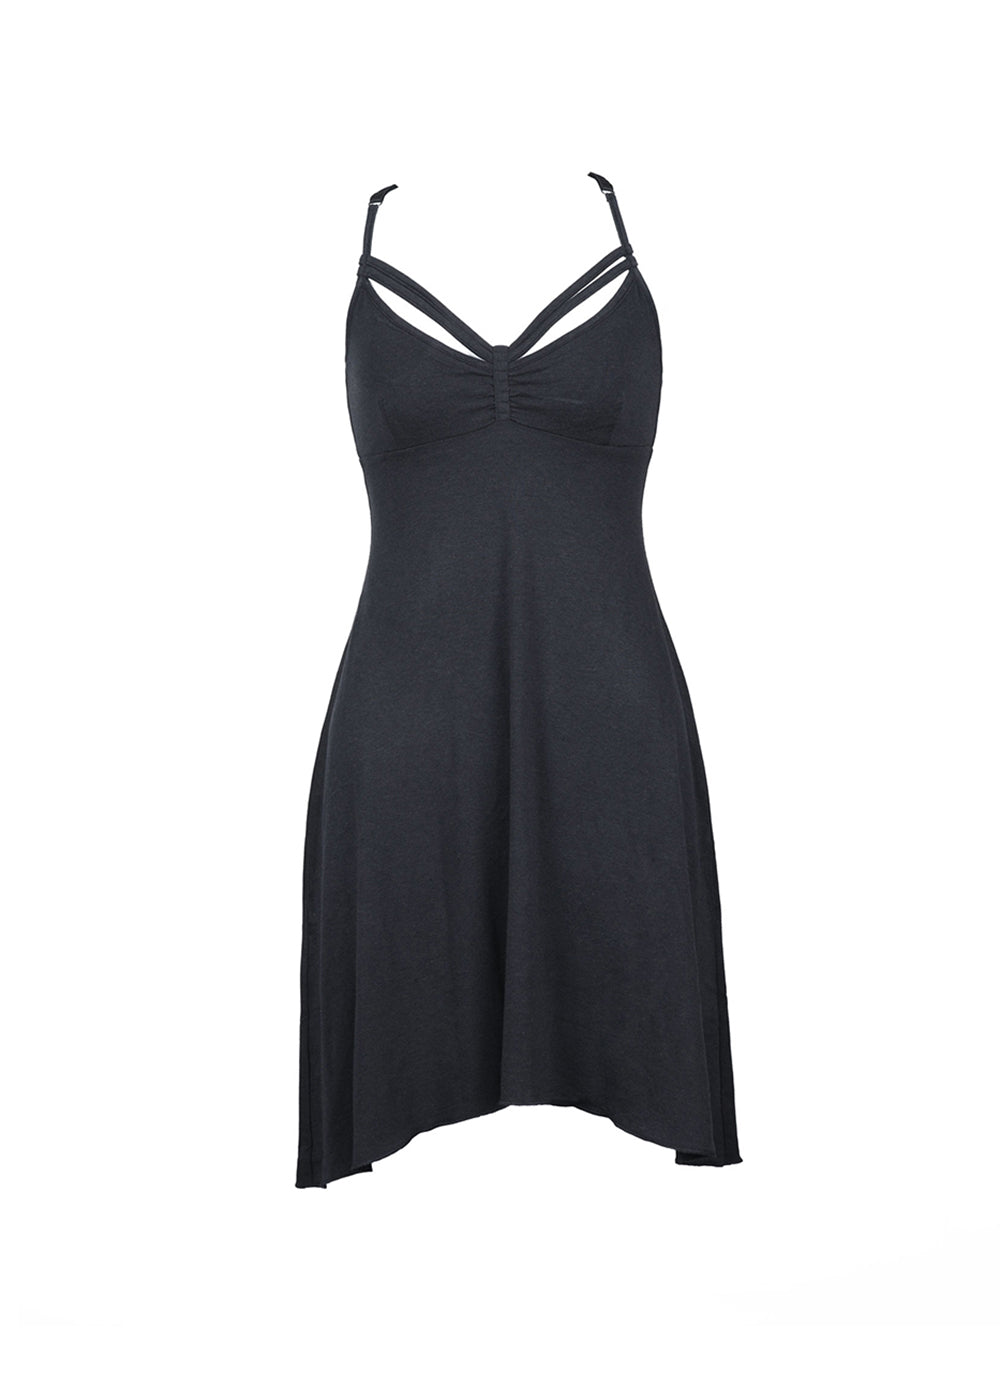 Bamboo and organic cotton black dress with strappy detail